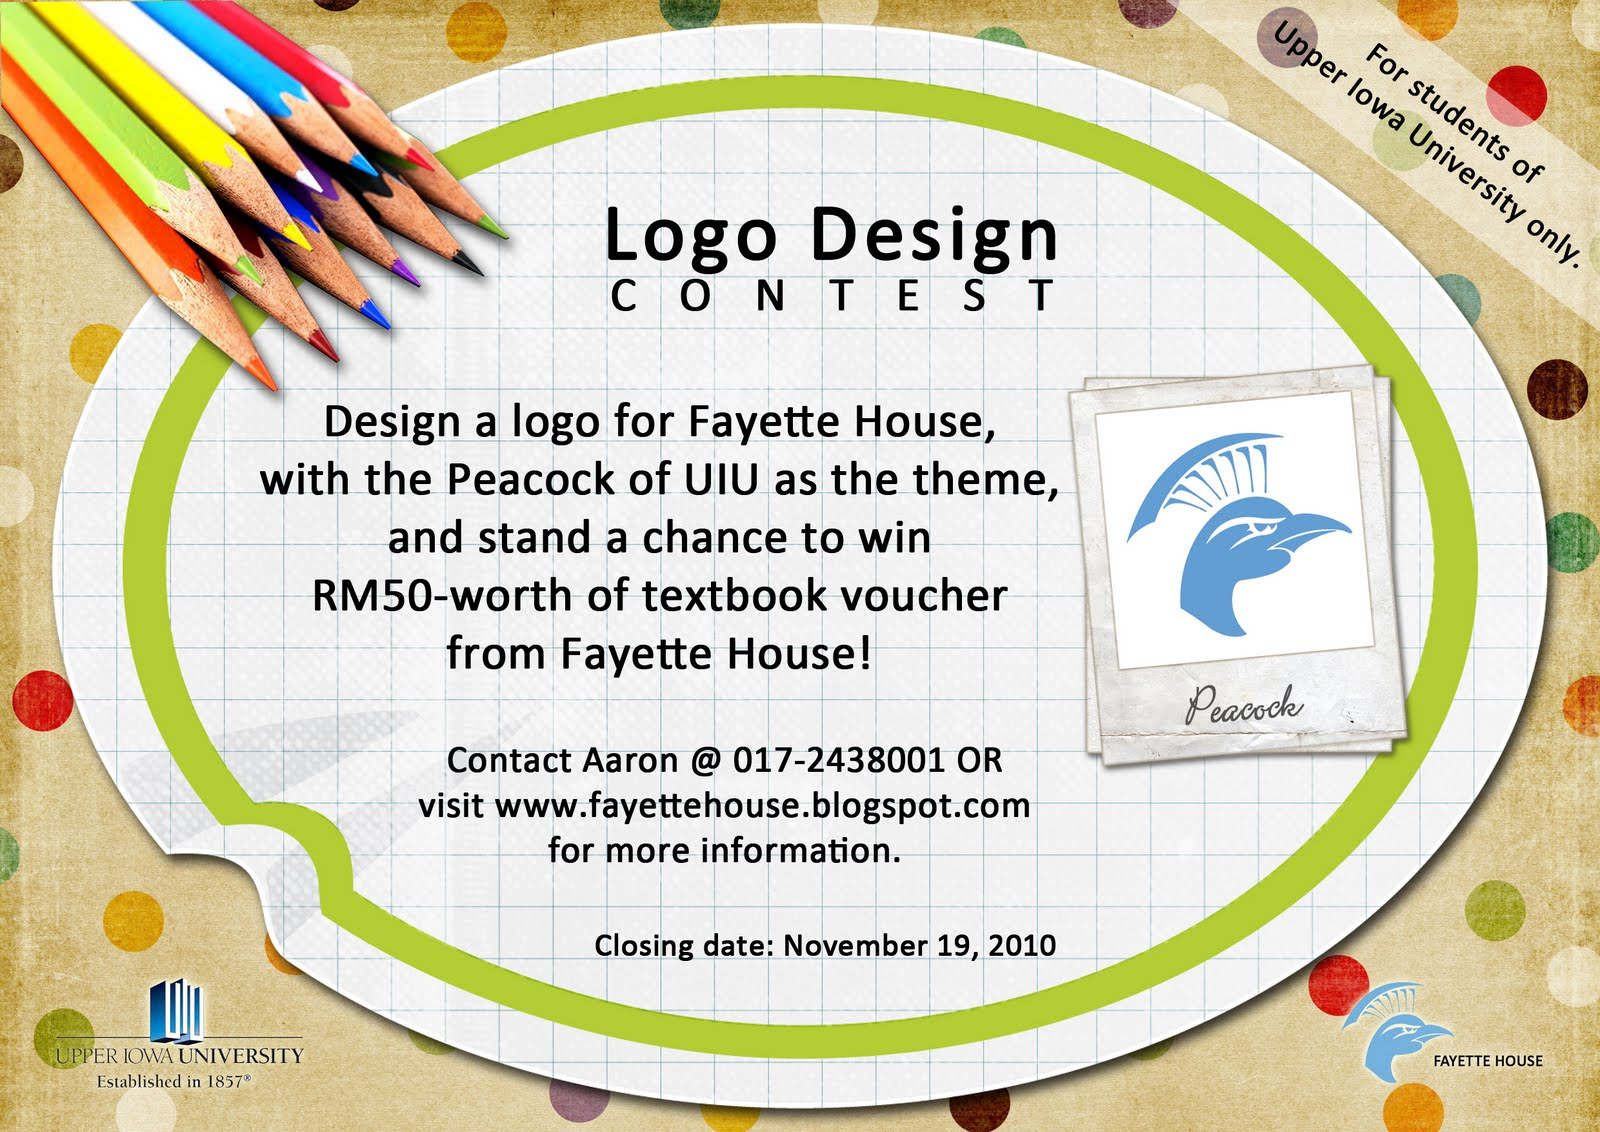 LOGO DESIGN CONTEST TO CELEBRATE THE 60TH ANNIVERSARY OF ...